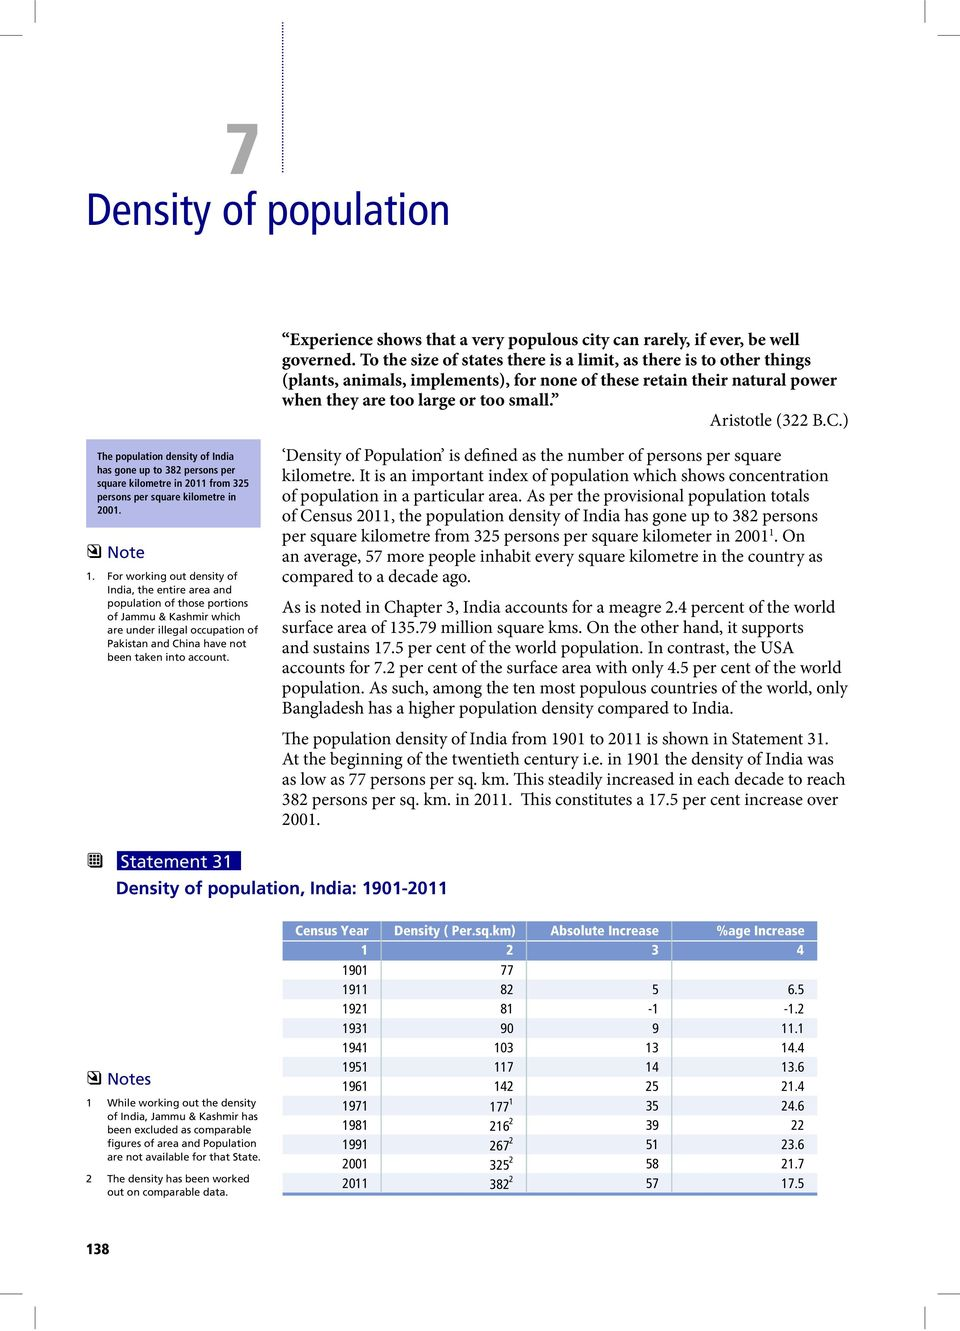 C.) The population density of India has gone up to 382 persons per square kilometre in 2011 from 325 persons per square kilometre in 2001. Note 1.